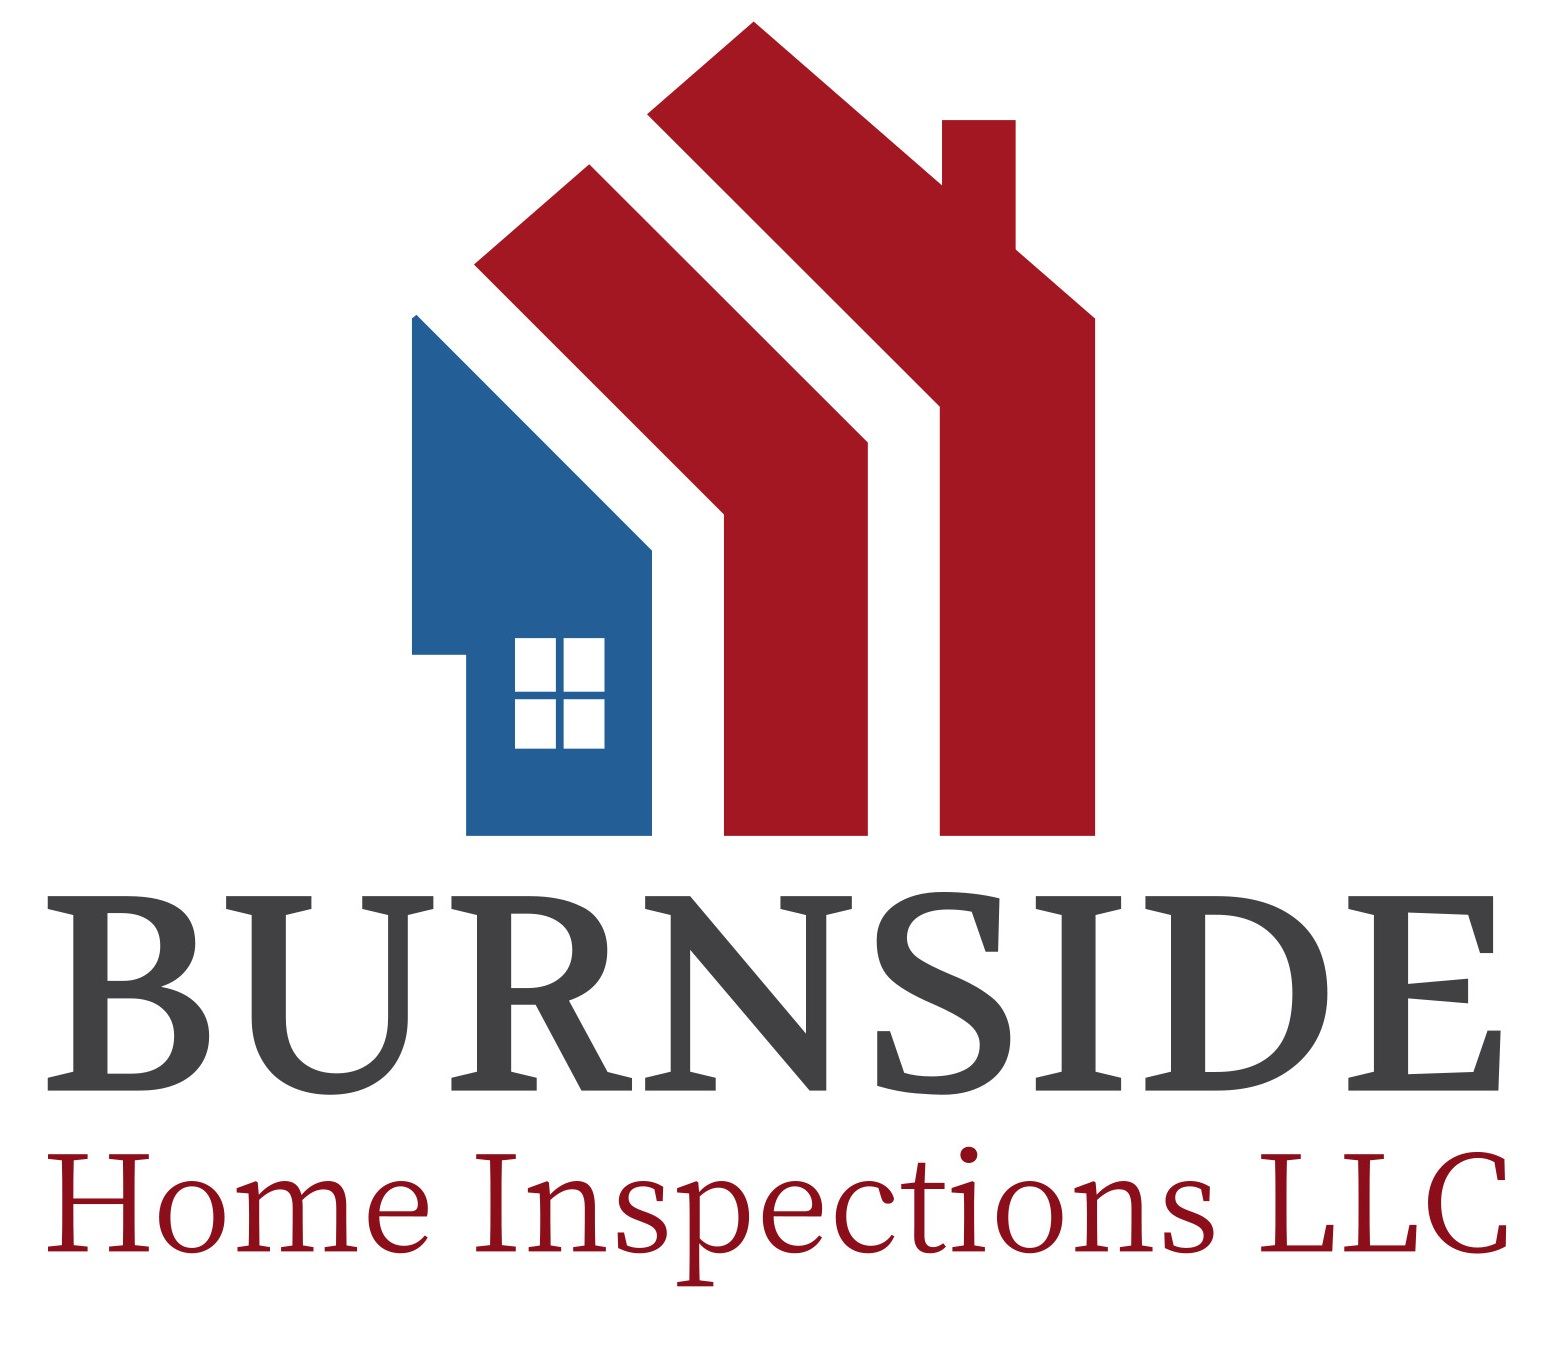 BURNSIDE Home Inspections LLC